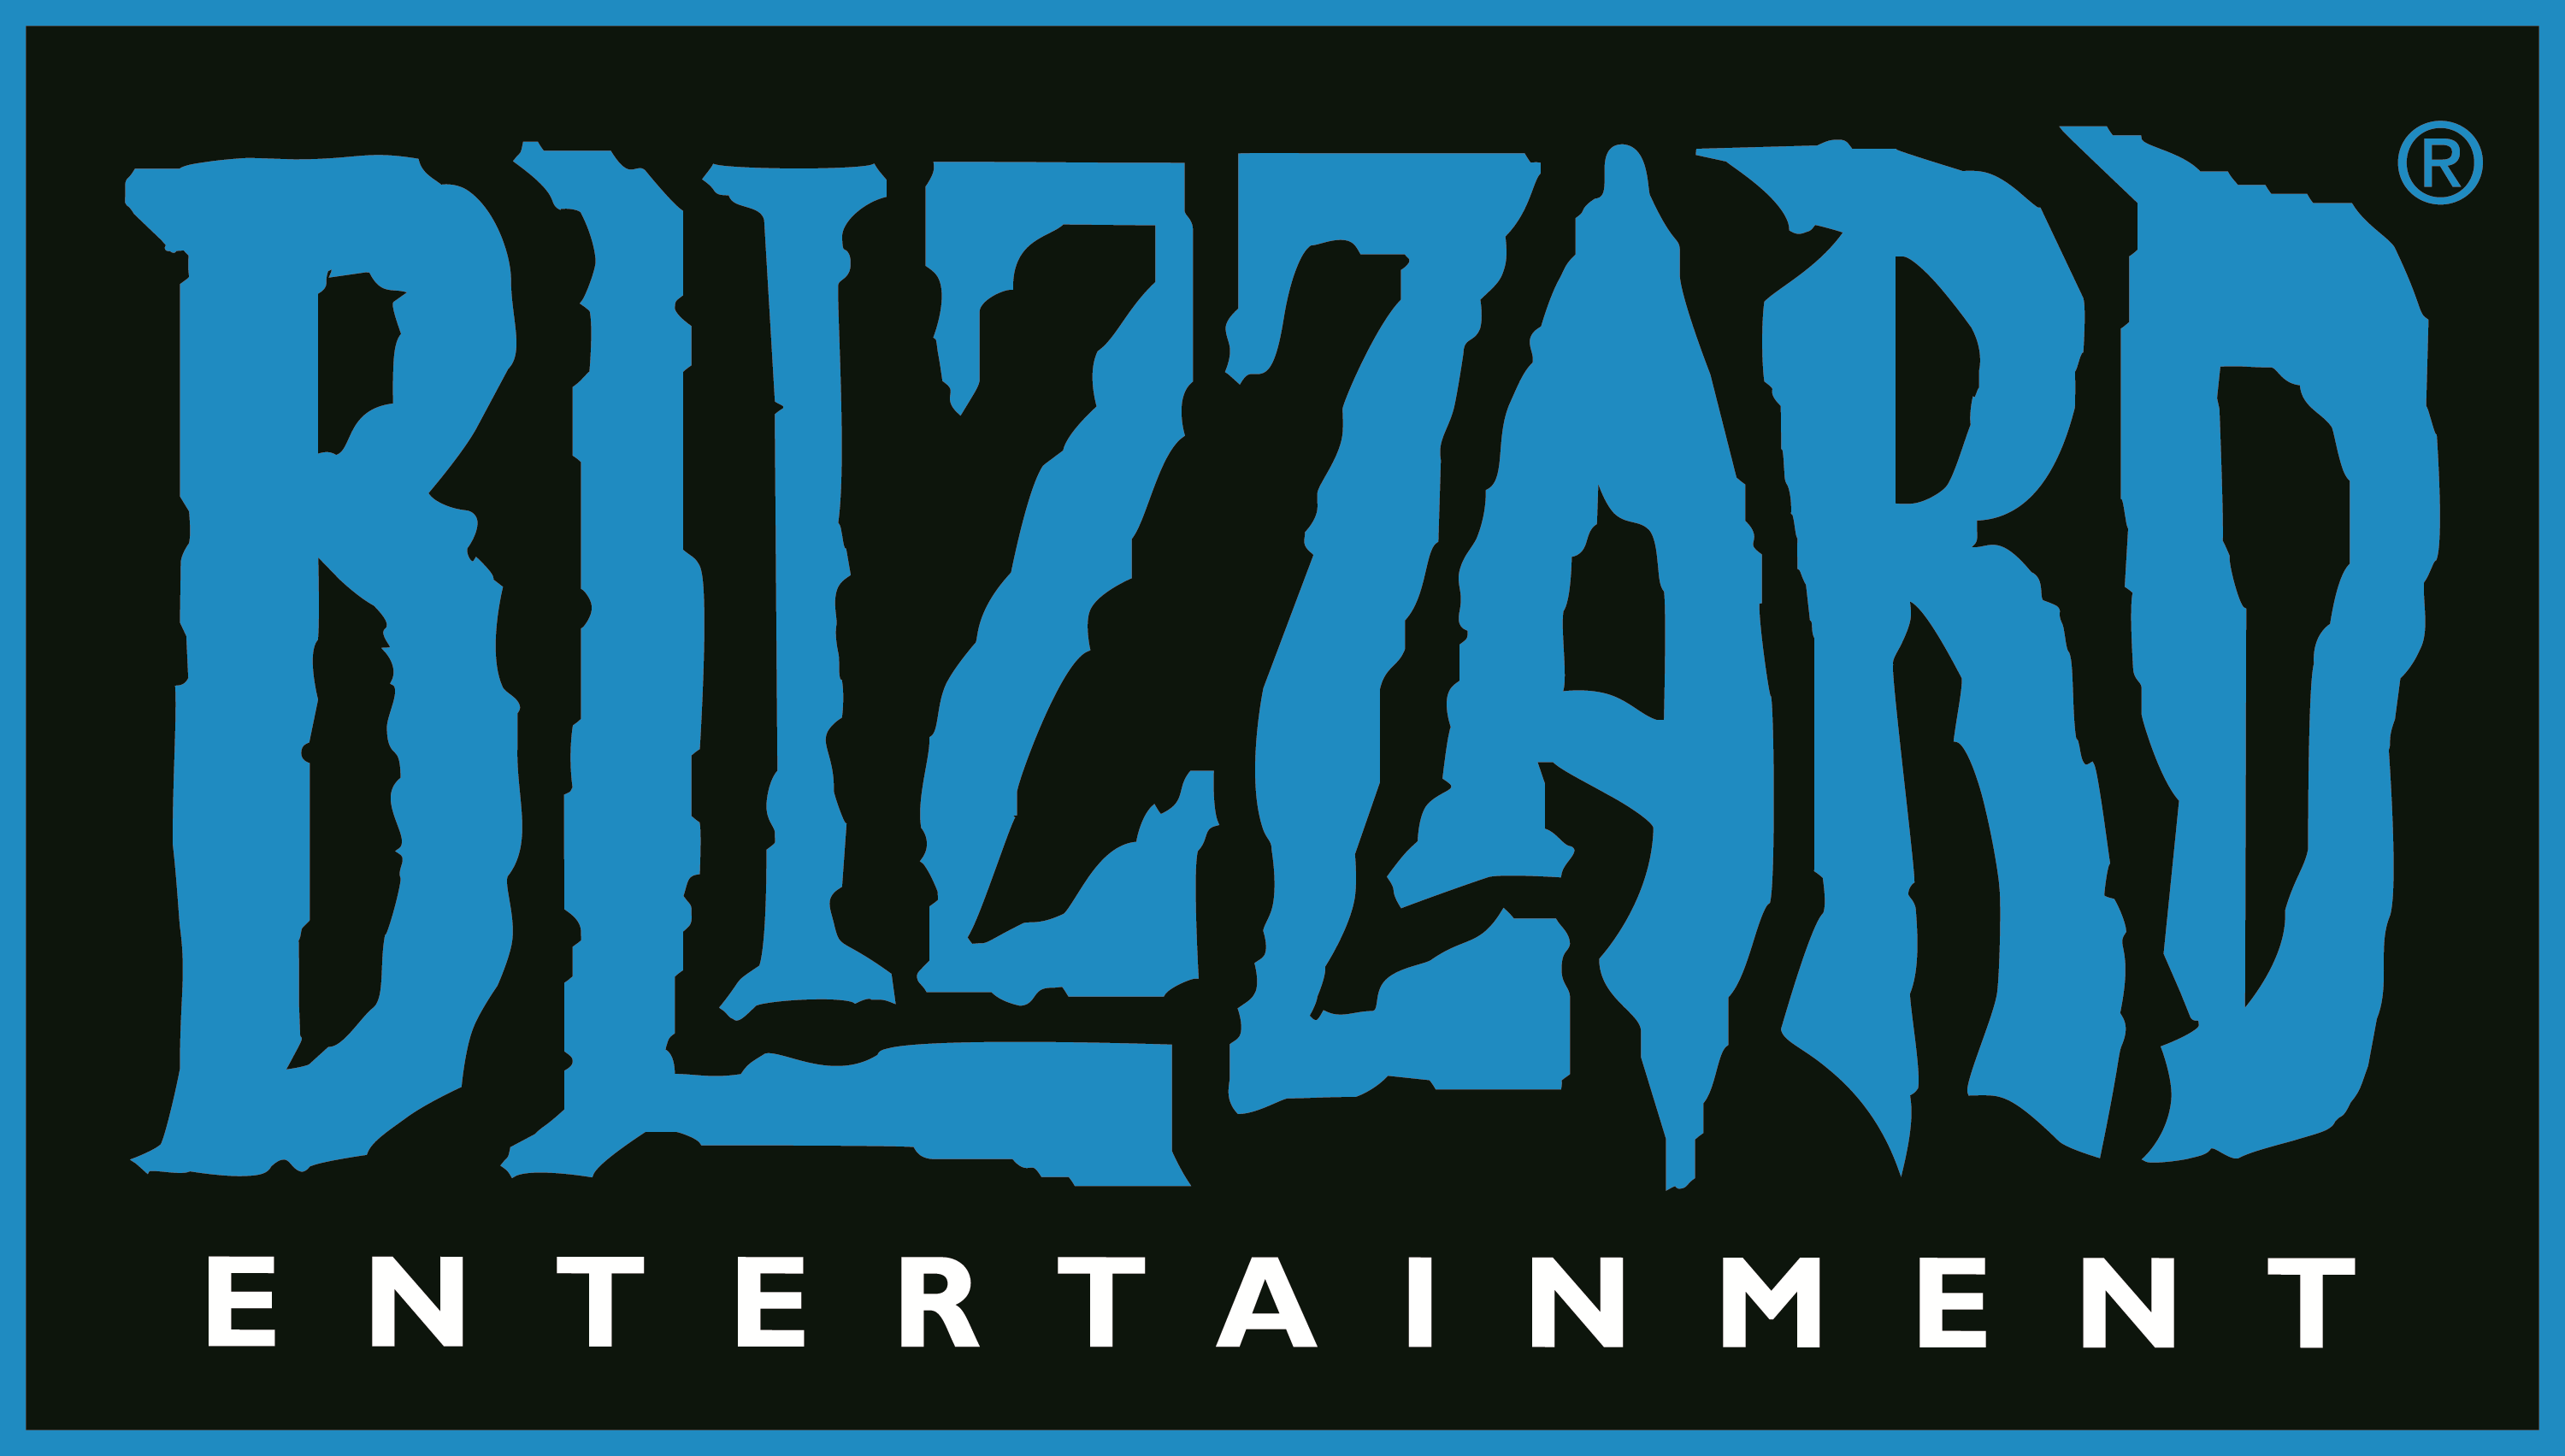 Blizzard_Entertainment_logo_blue_outline